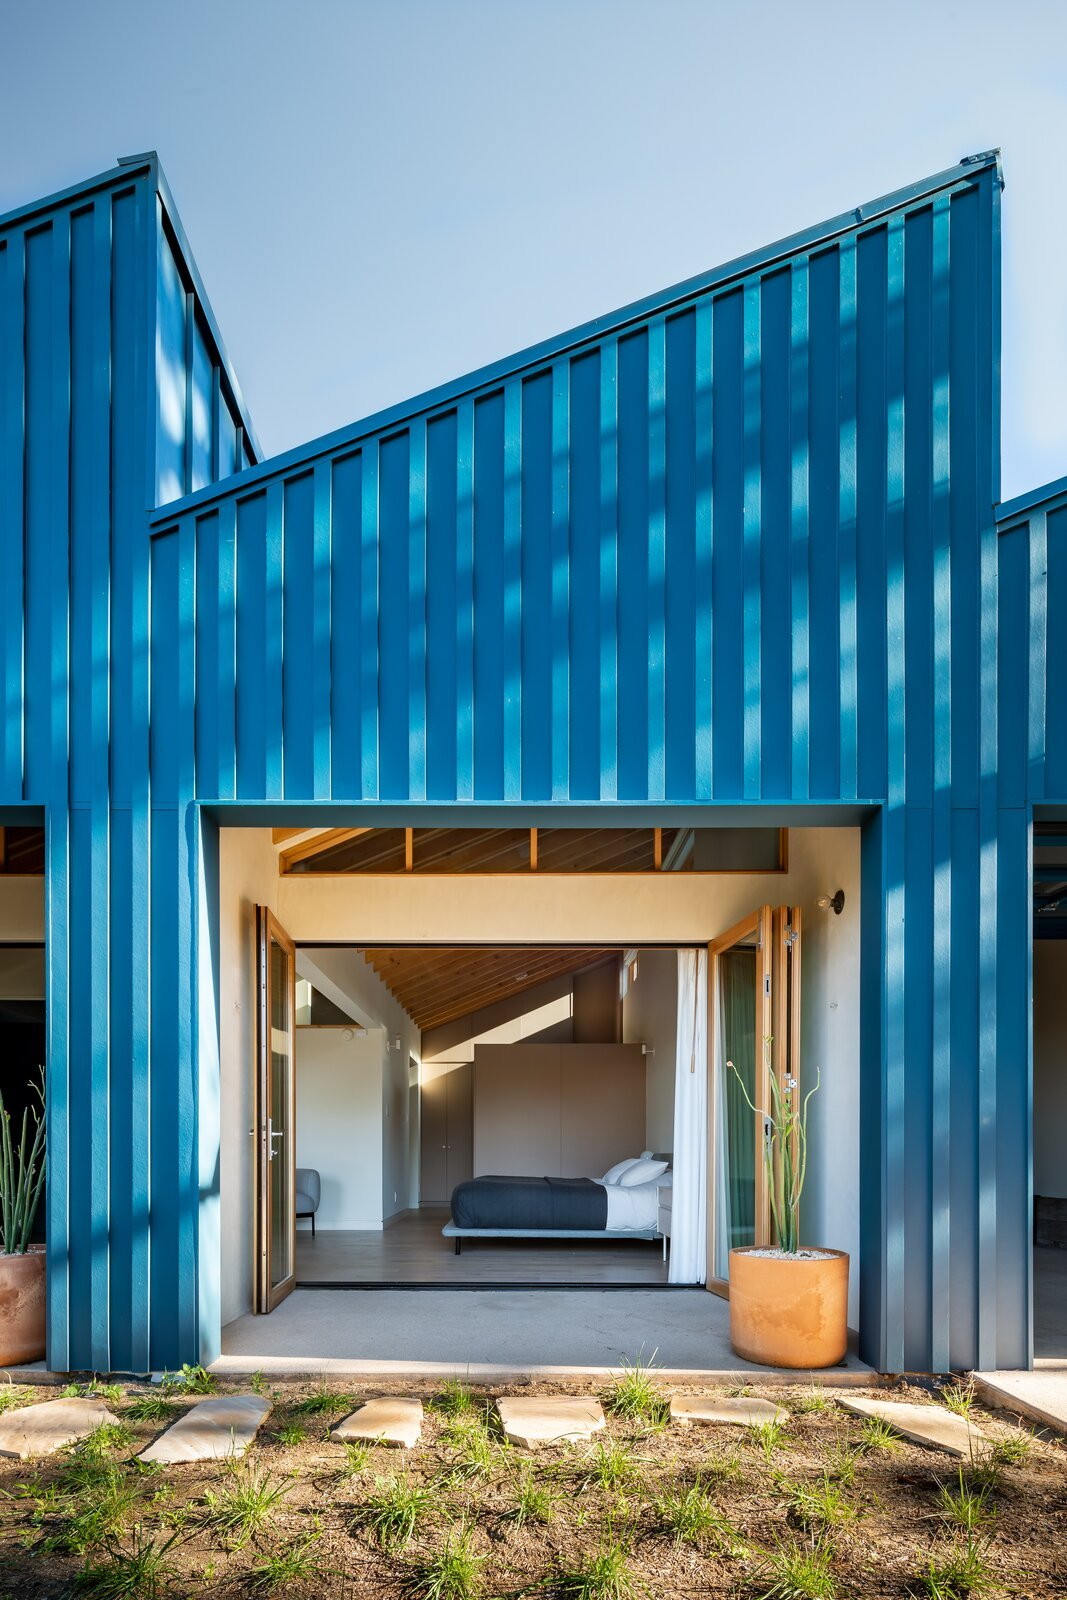 Casa Nova by Productora and Part Office